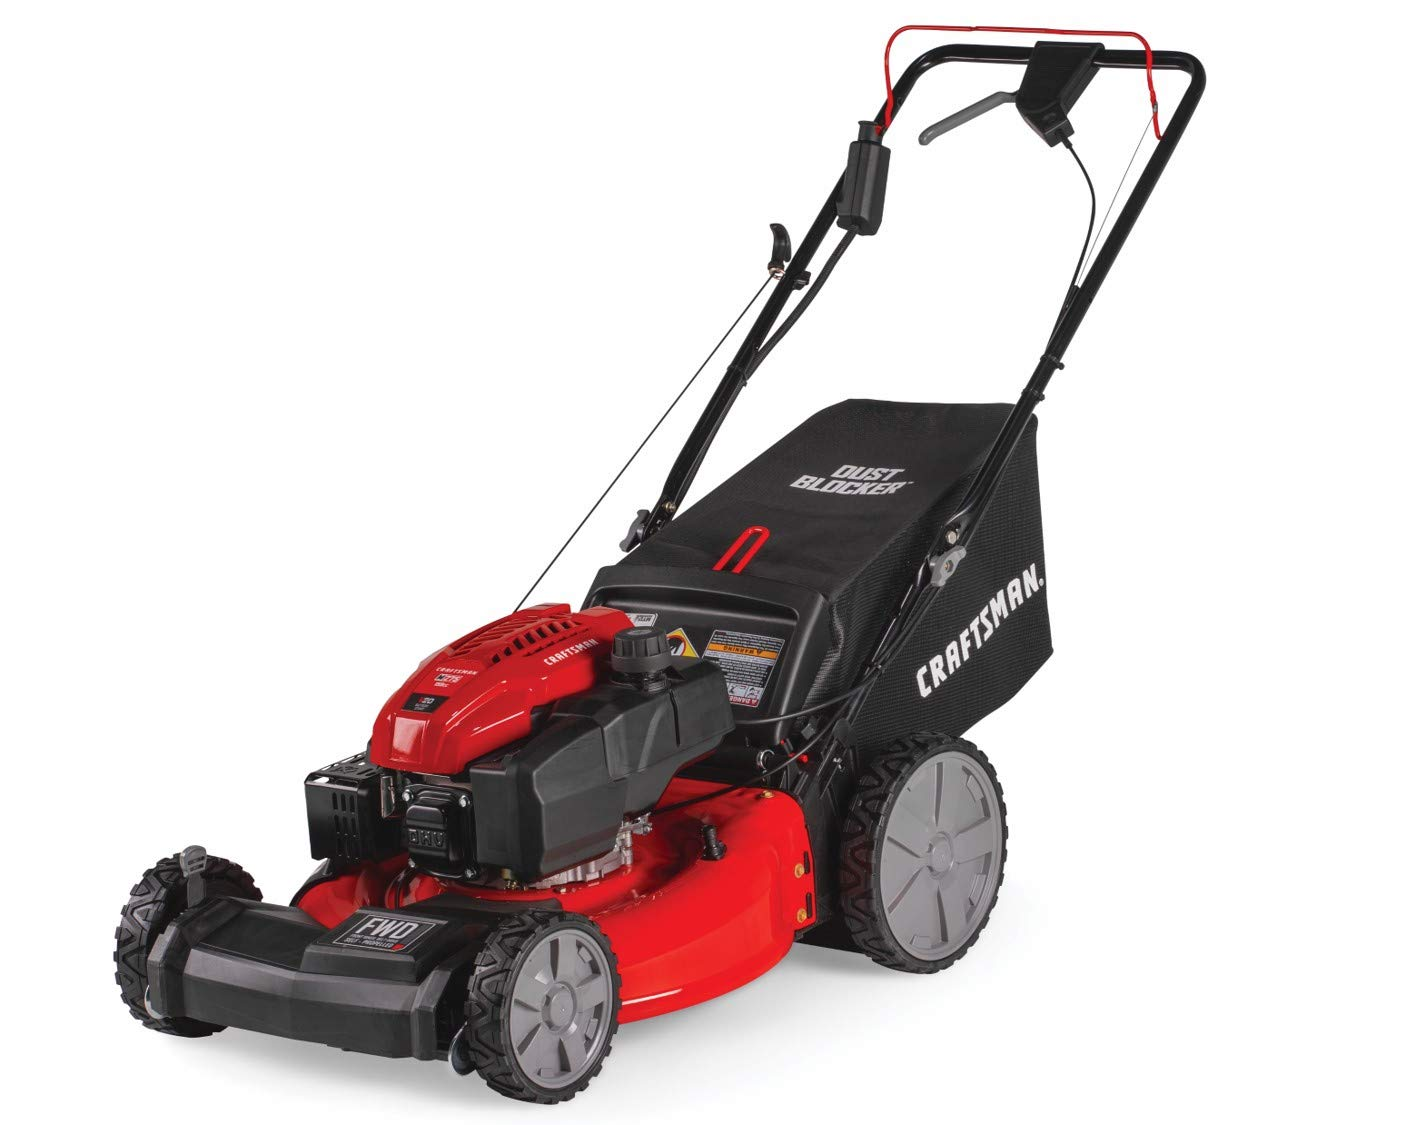 best self-propelled gas lawn mower - Craftsman